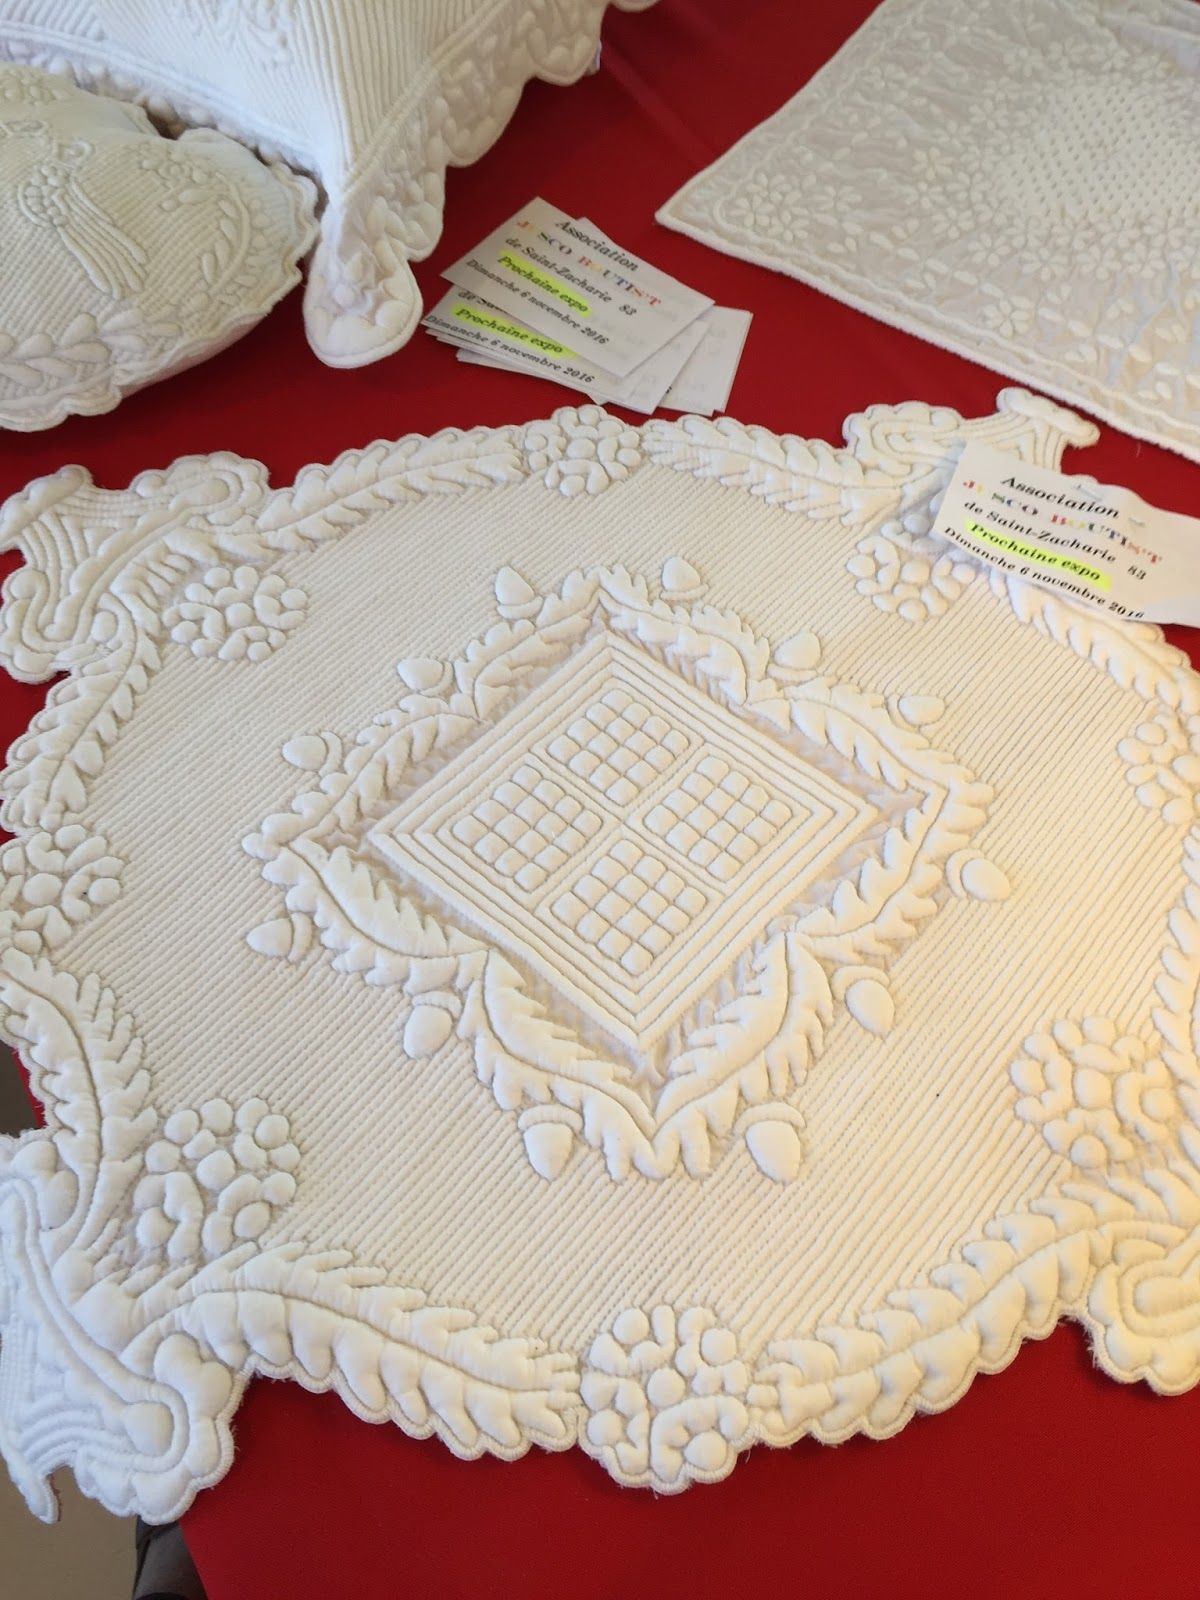 Pin by MG Ryan on Quilts   Pinterest